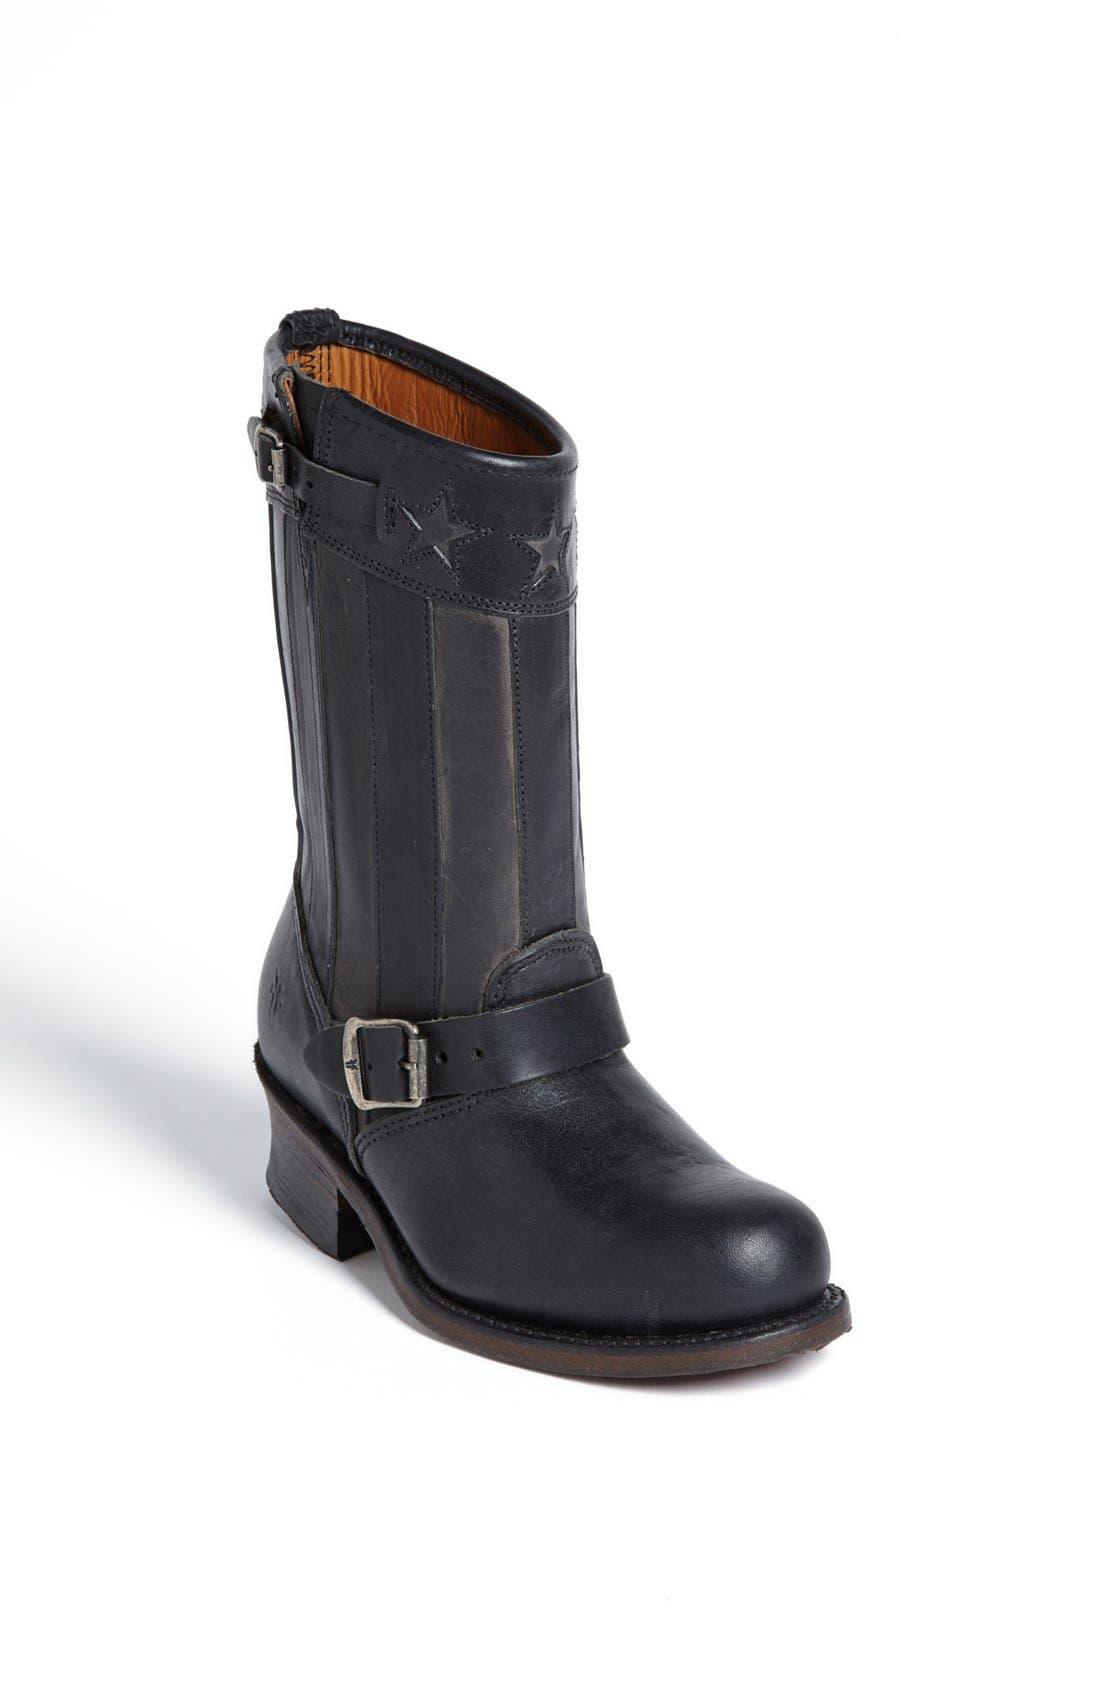 Alternate Image 1 Selected - Frye 'Engineer Americana' Short Boot (Limited Edition)